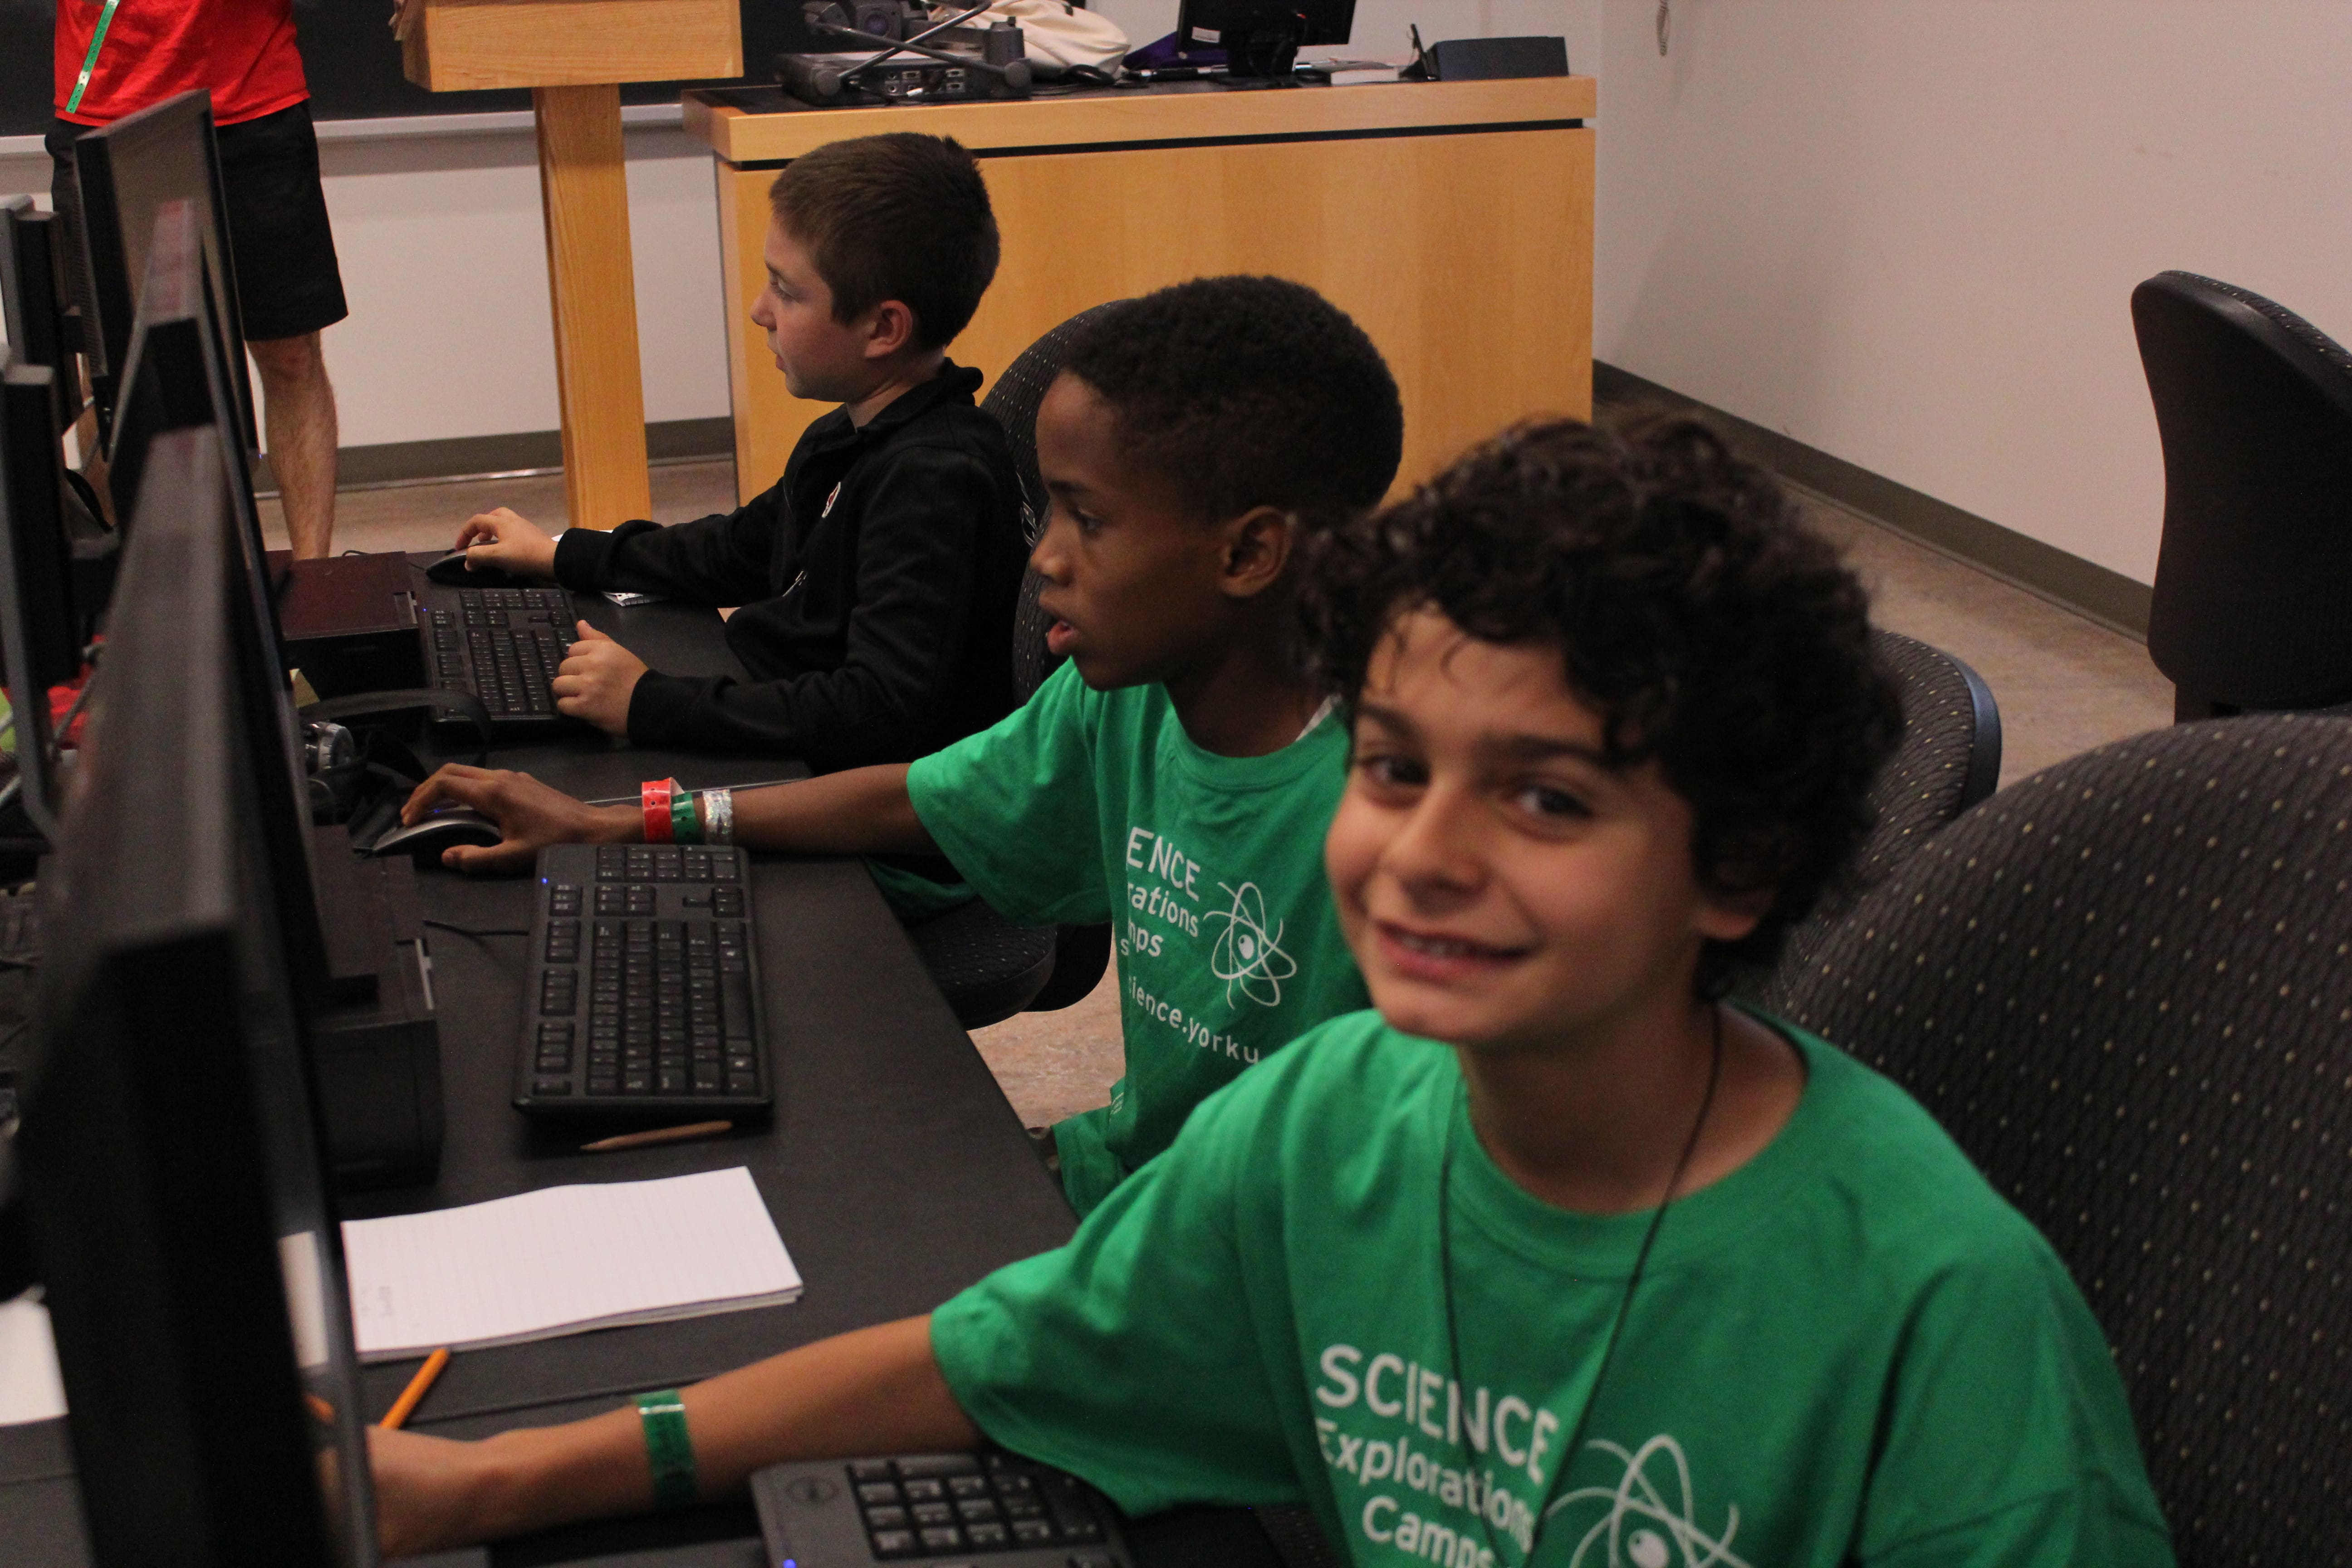 Young boys on computers in classroom.